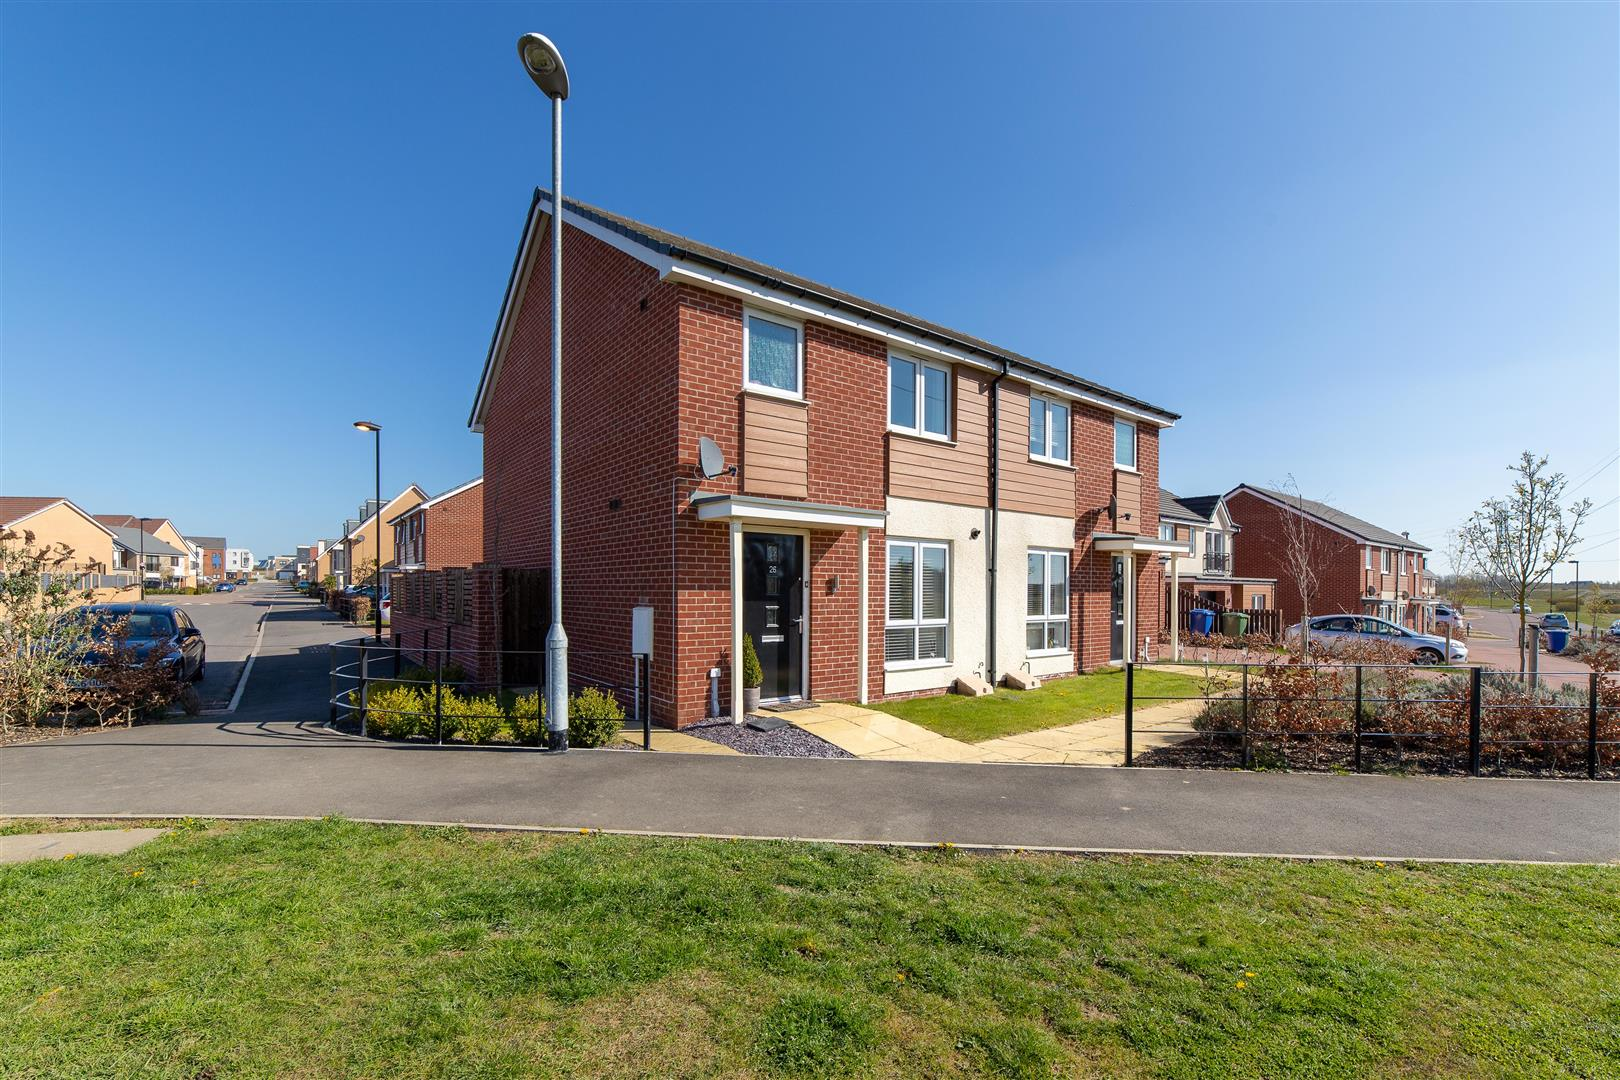 3 bed semi-detached house for sale in Shotton View, Great Park, NE13